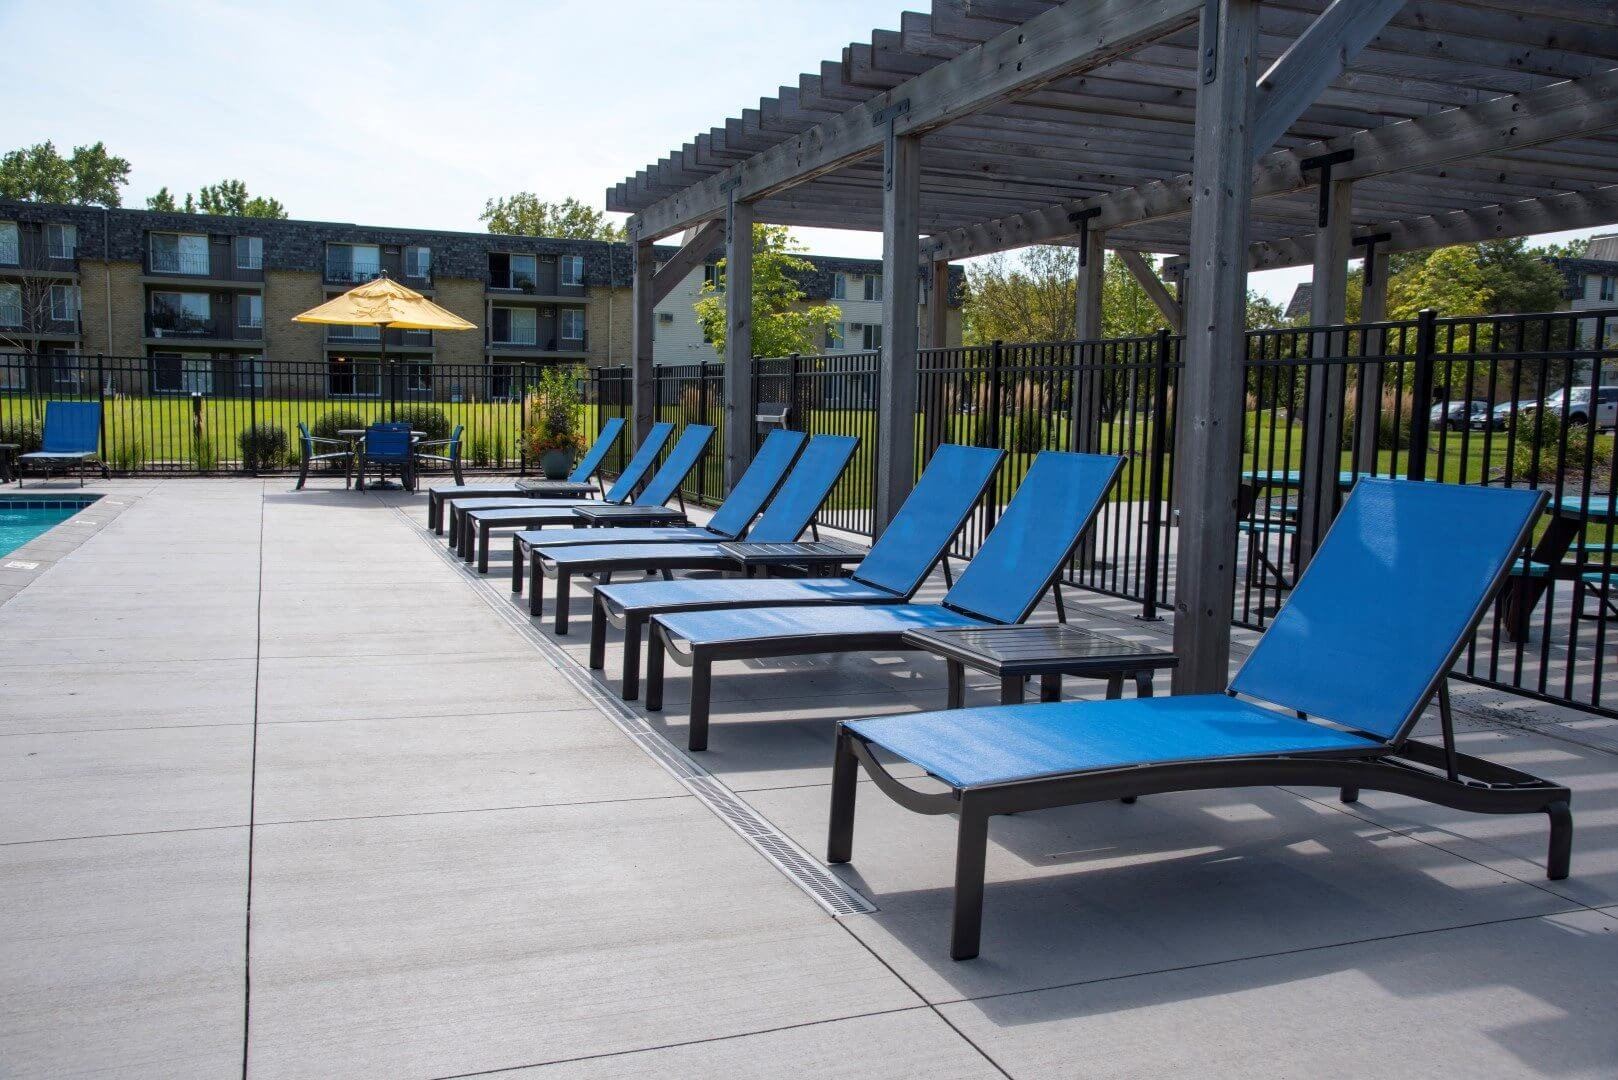 Swimming pool area at Shorview Grand new apartments in Shoreview